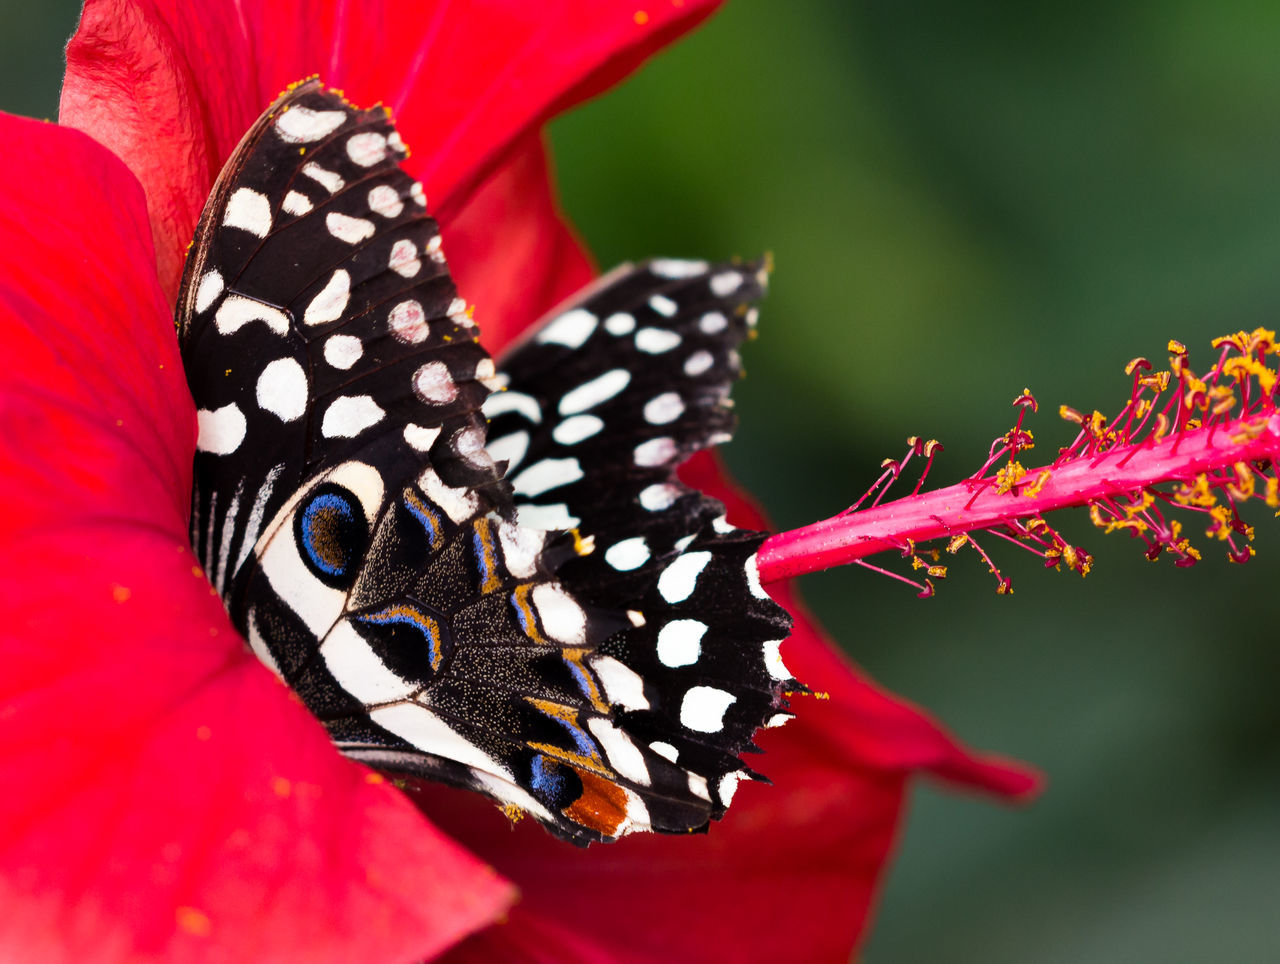 animal themes, animals in the wild, insect, butterfly - insect, red, one animal, animal markings, animal wildlife, spotted, close-up, nature, no people, day, butterfly, plant, freshness, beauty in nature, outdoors, fragility, pollination, flower, flower head